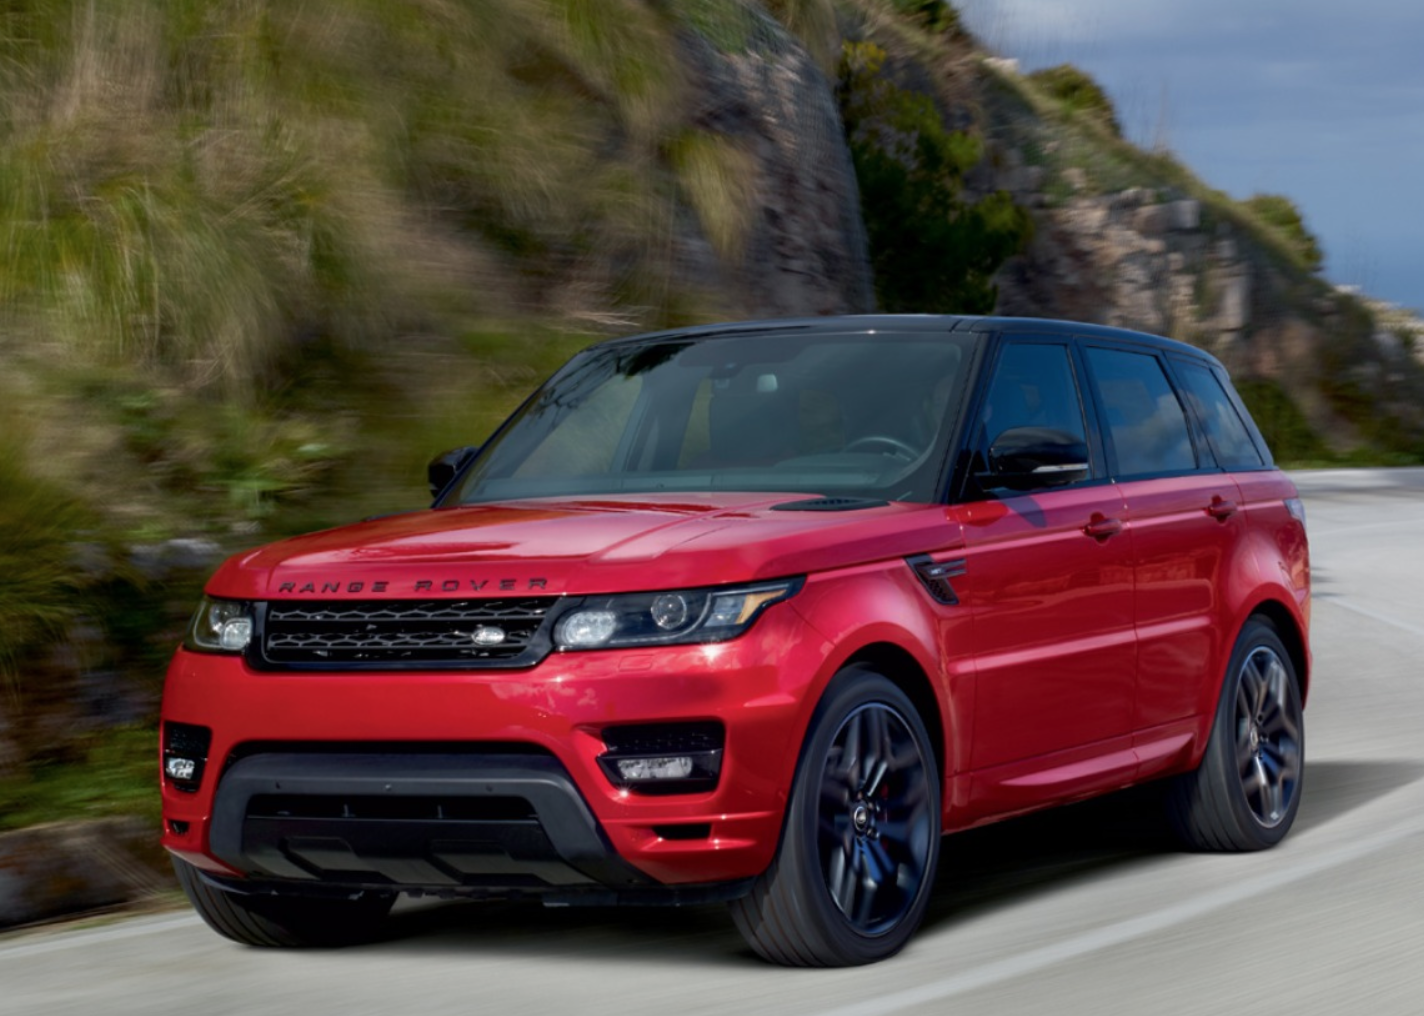 2016 range rover sport to add diesel engine at the new york auto show next week land rover will debut the 2016 range rover sport hst limited edition that